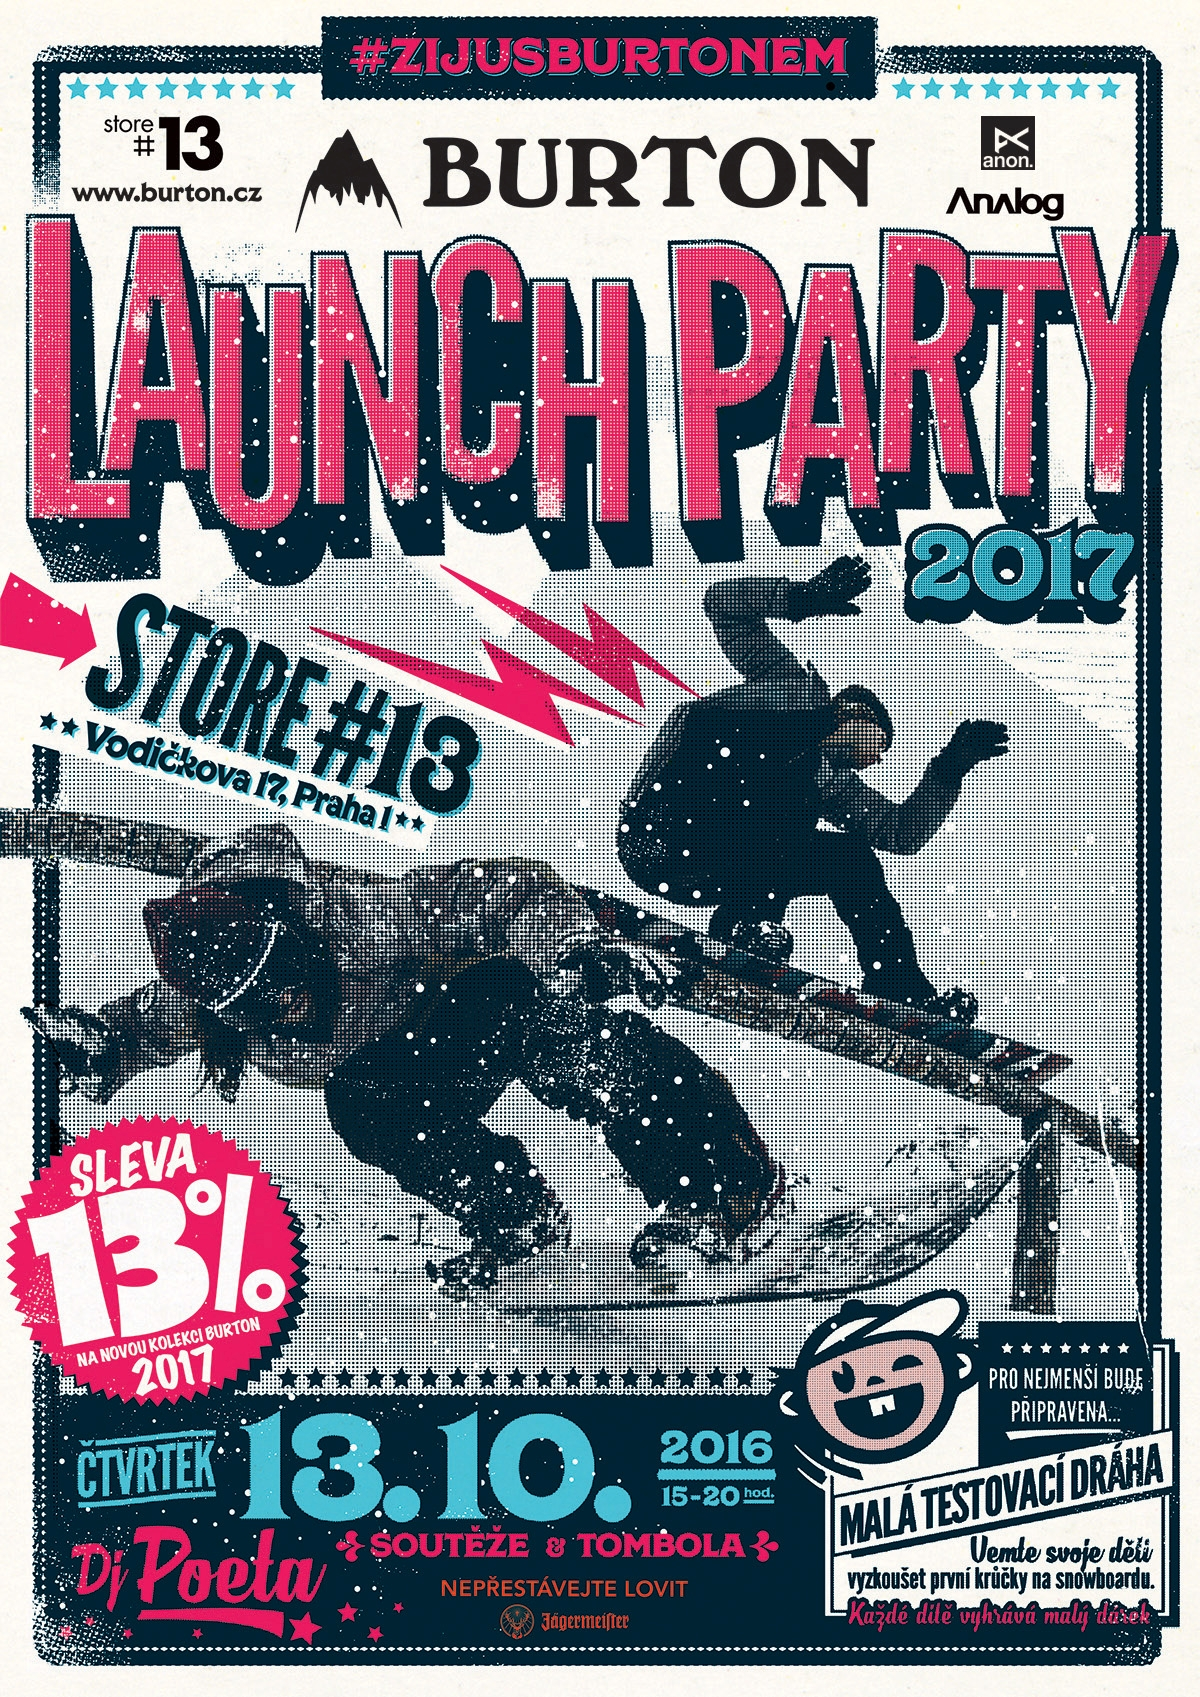 burton-launch-party-2017